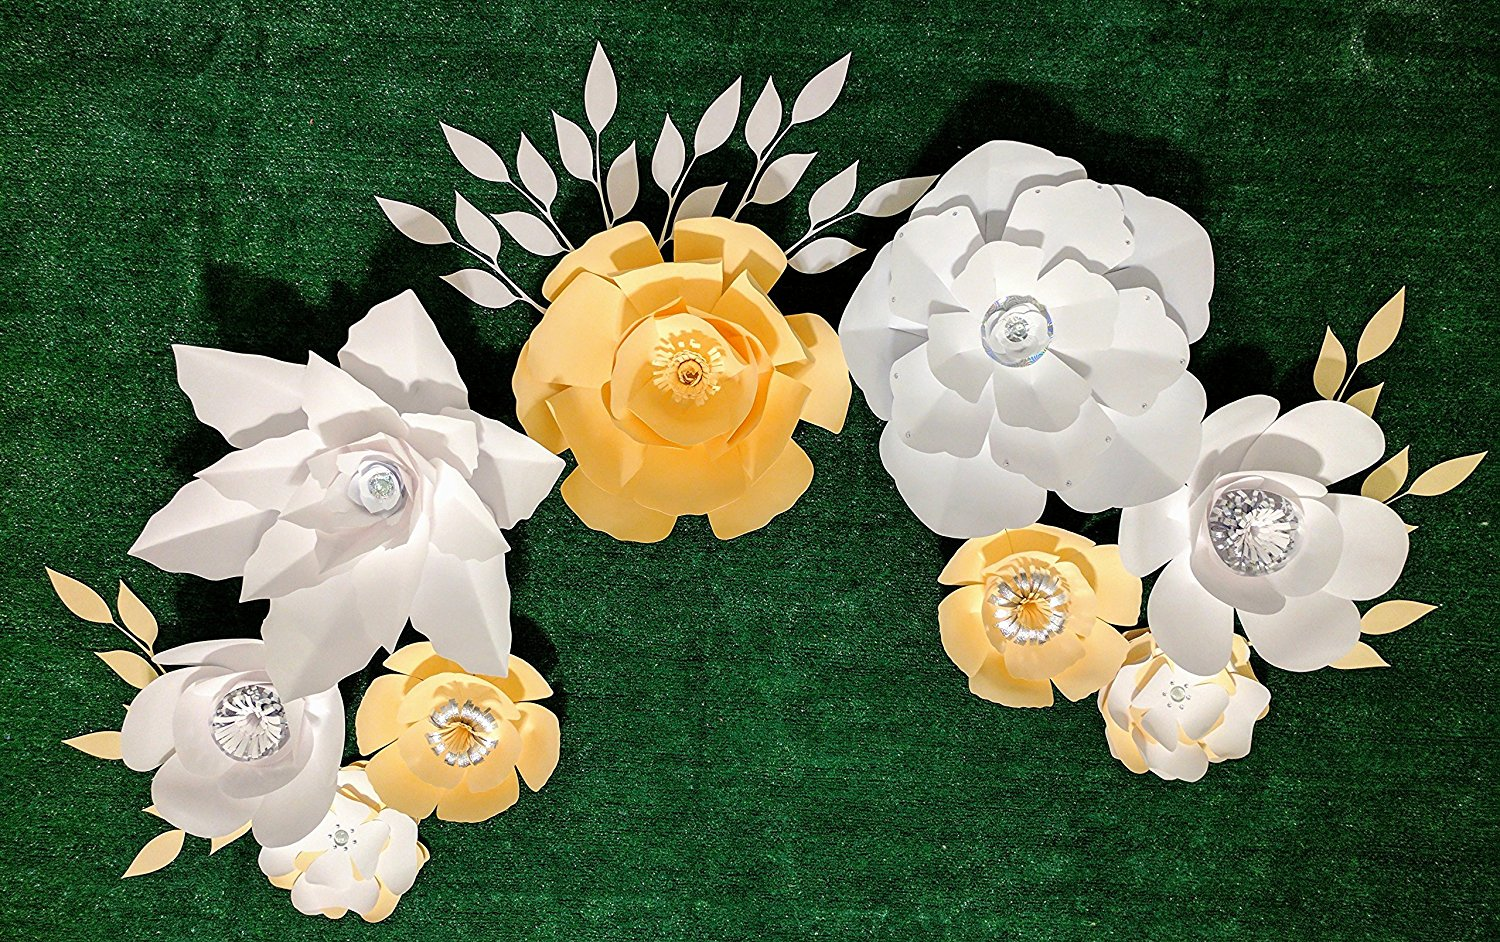 Paper Flowers For Backdrops Includes 9 Paper Flowers And 12 Paper